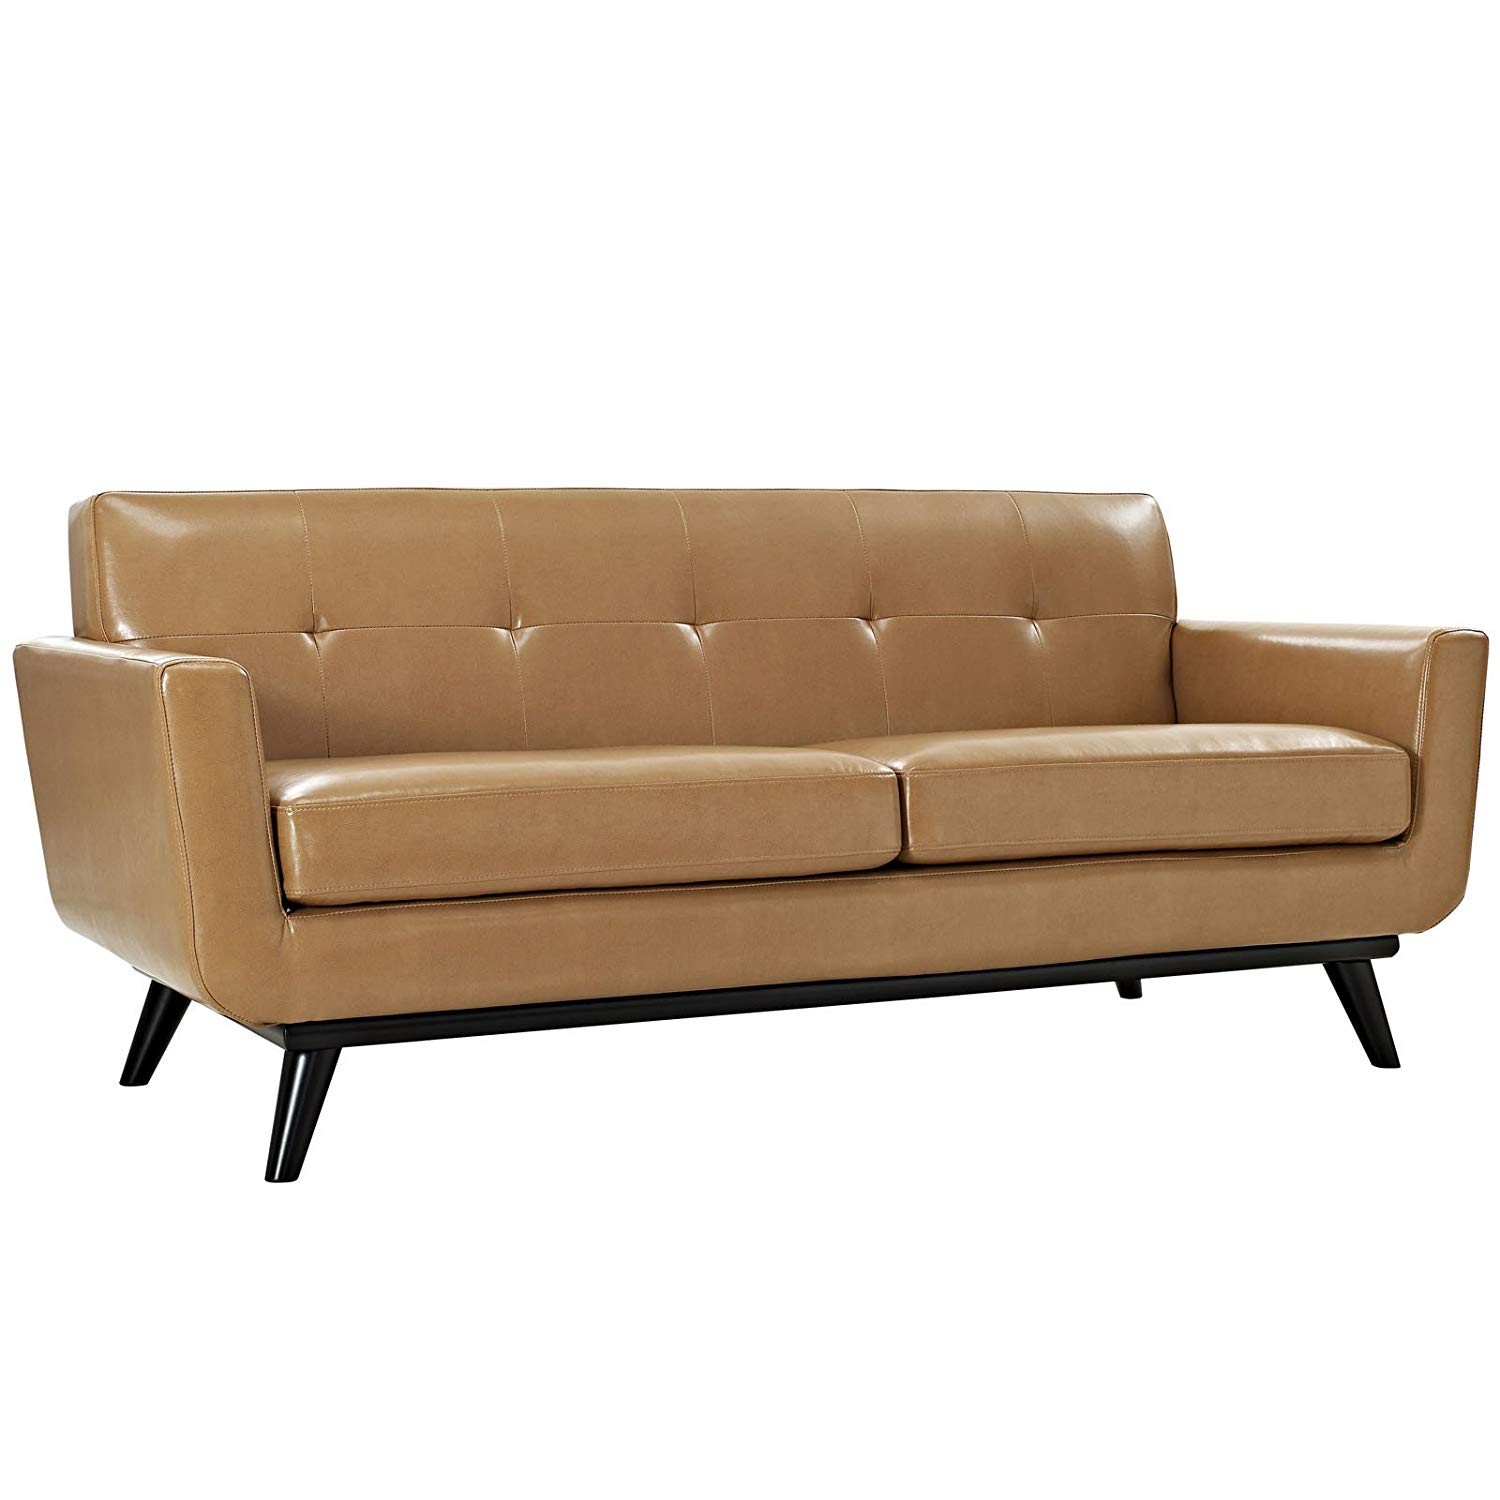 Traveller Location: Modway Engage Mid-Century Modern Upholstered Leather Loveseat  In Tan: Kitchen & Dining